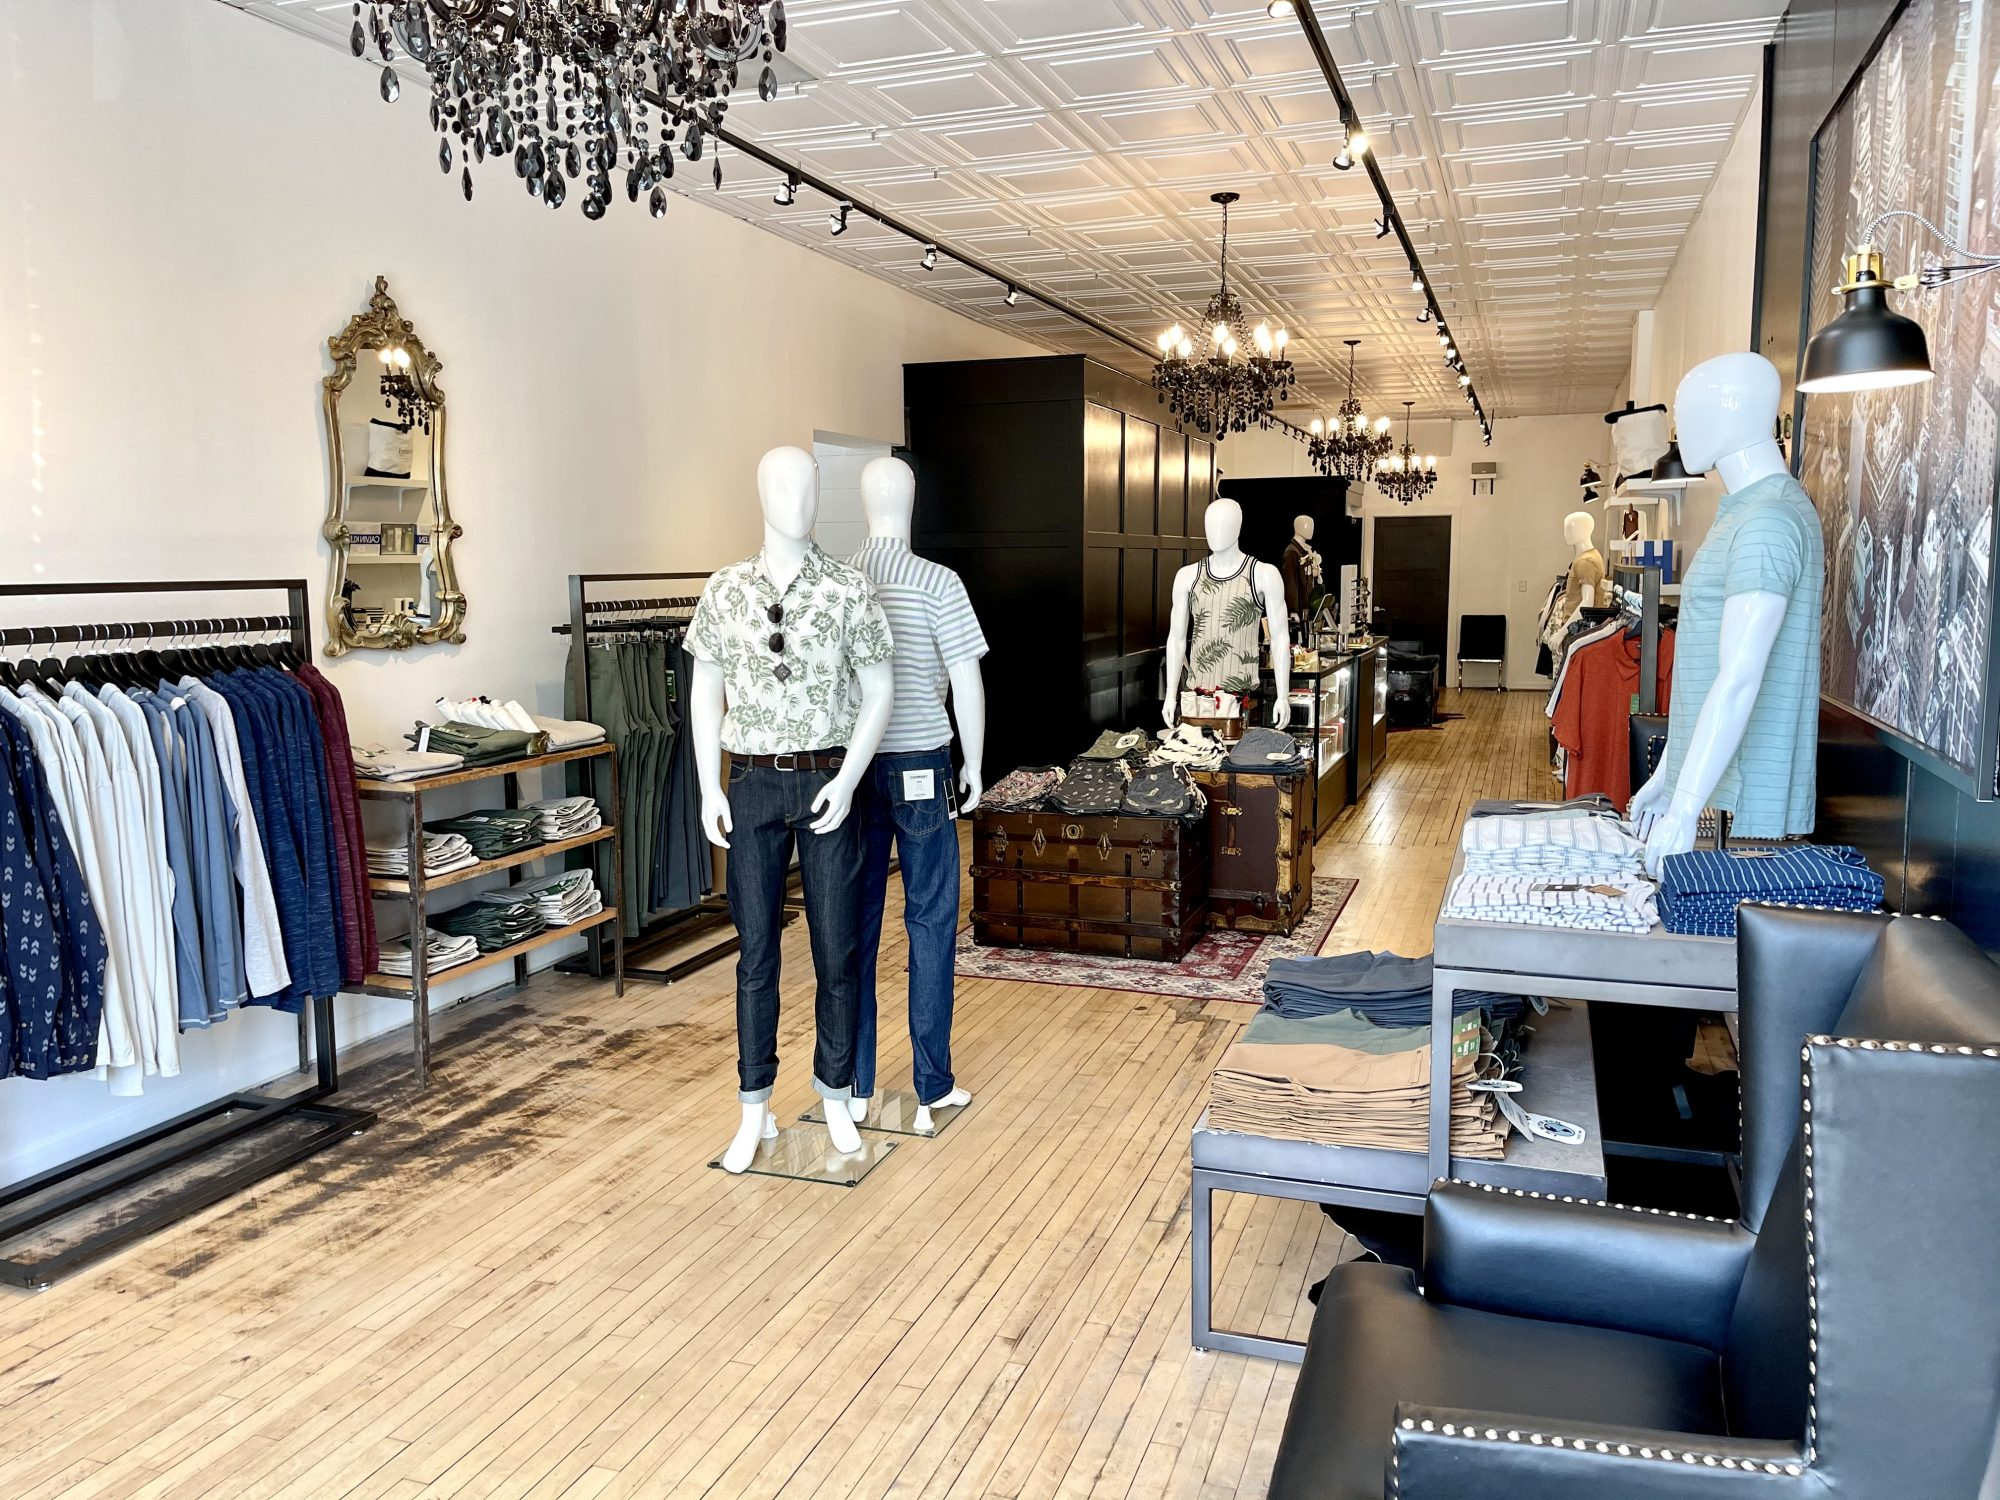 Curated by D&A in Woodstock, Illinois